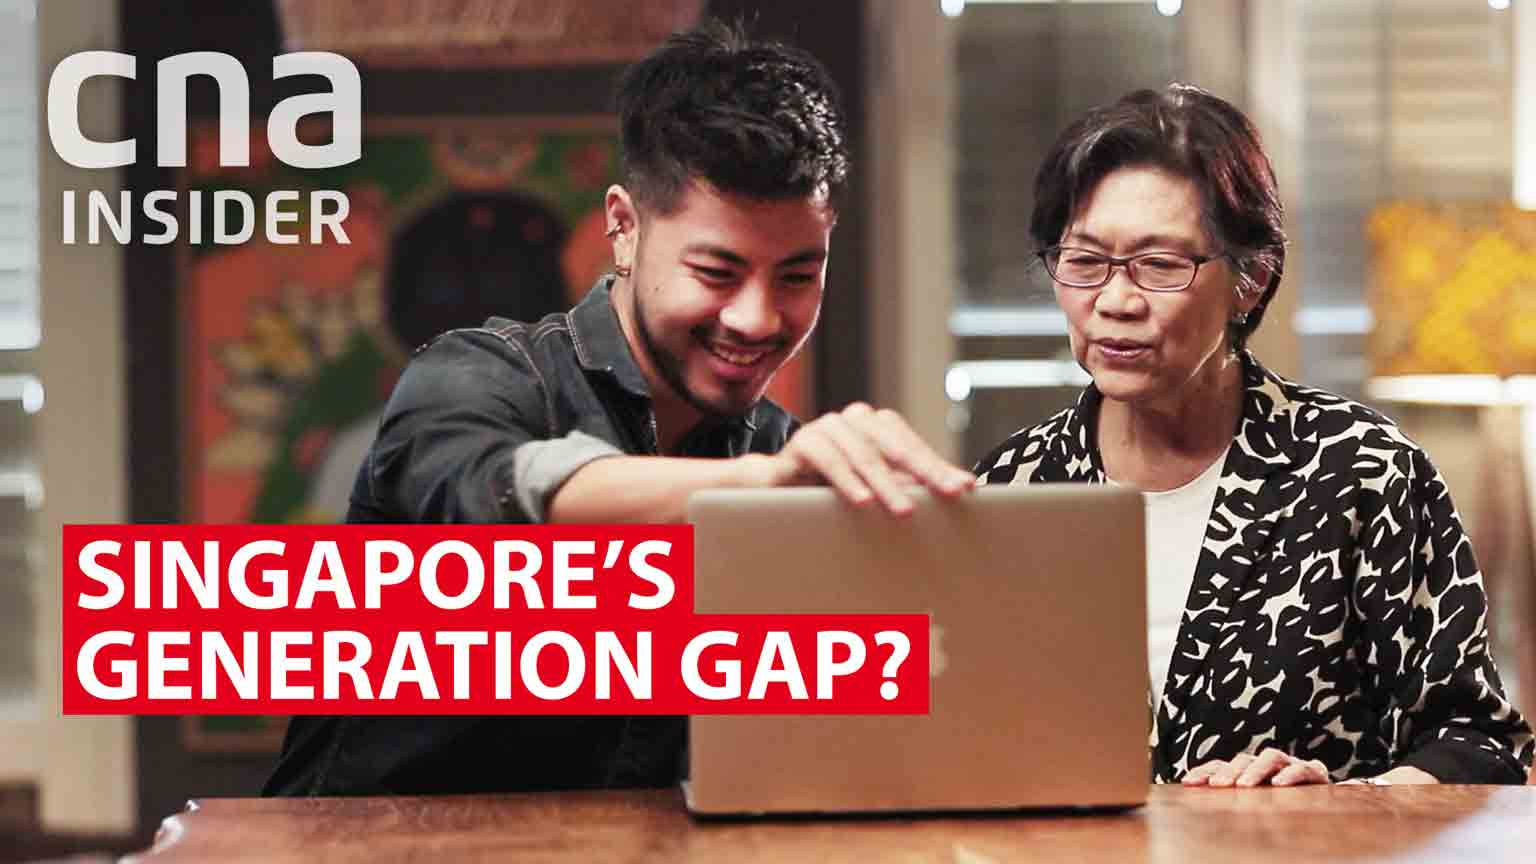 Millennials vs seniors: Singapore's generation gap